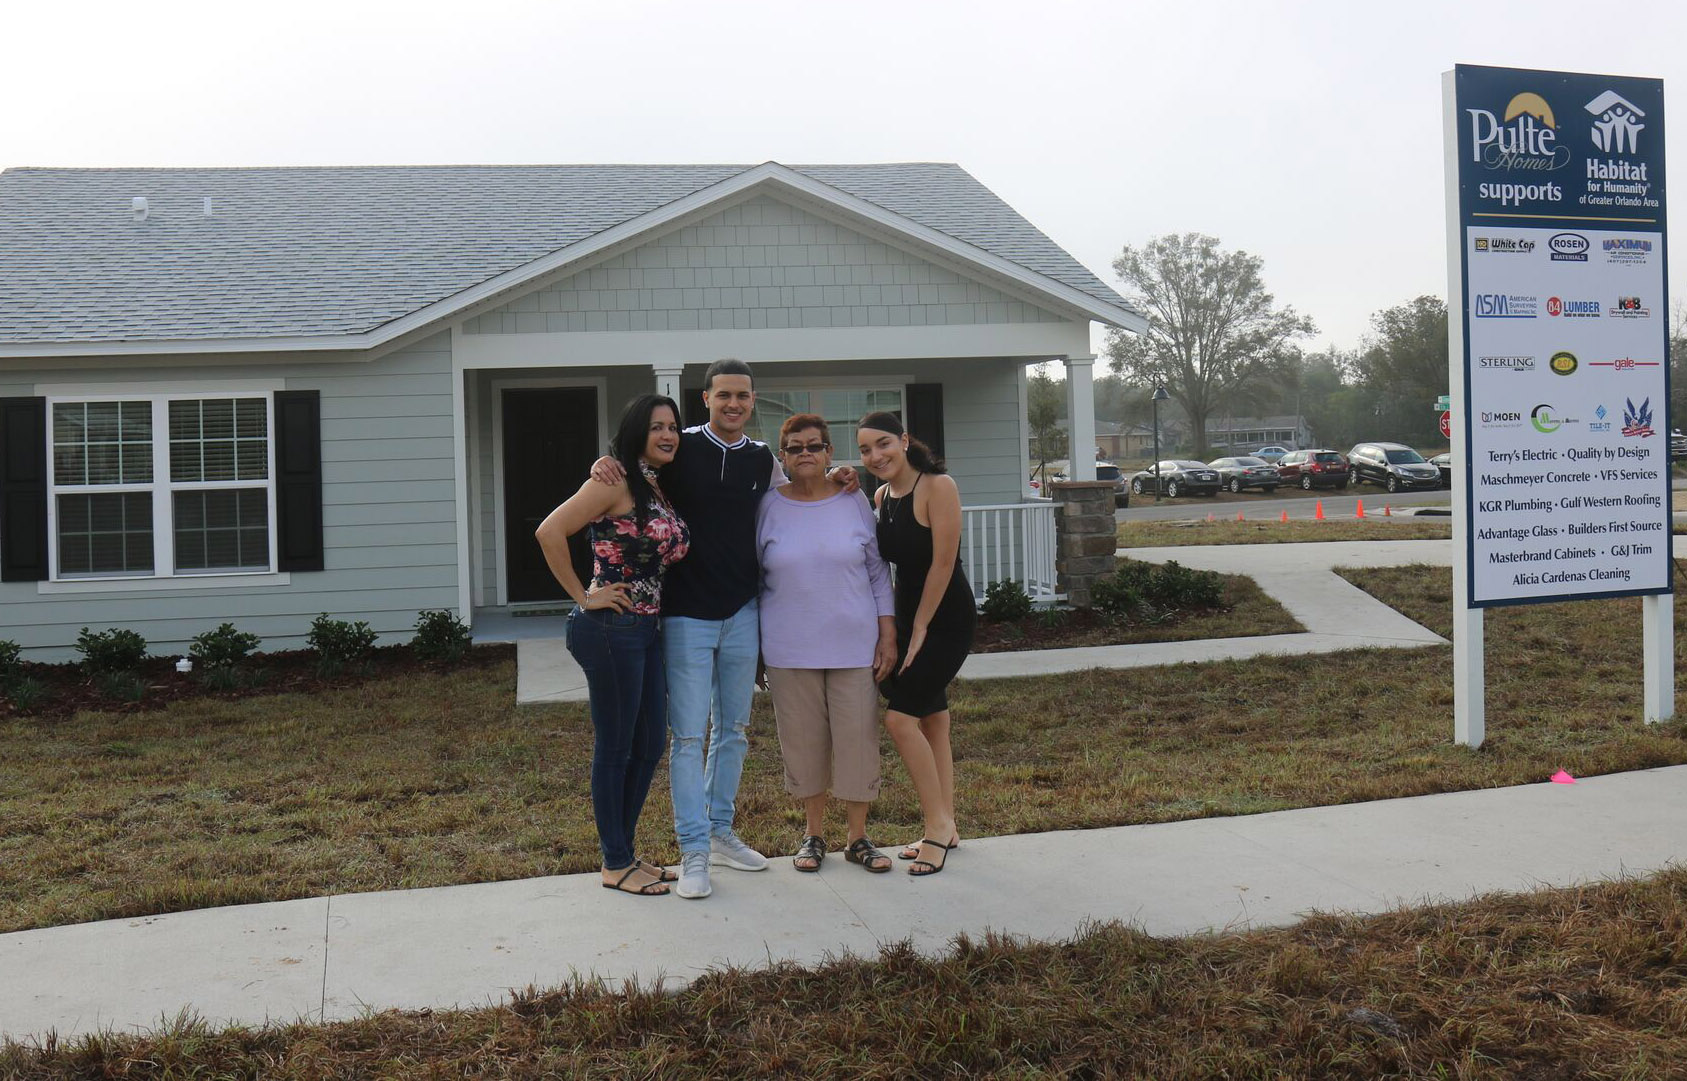 Family in front of a home